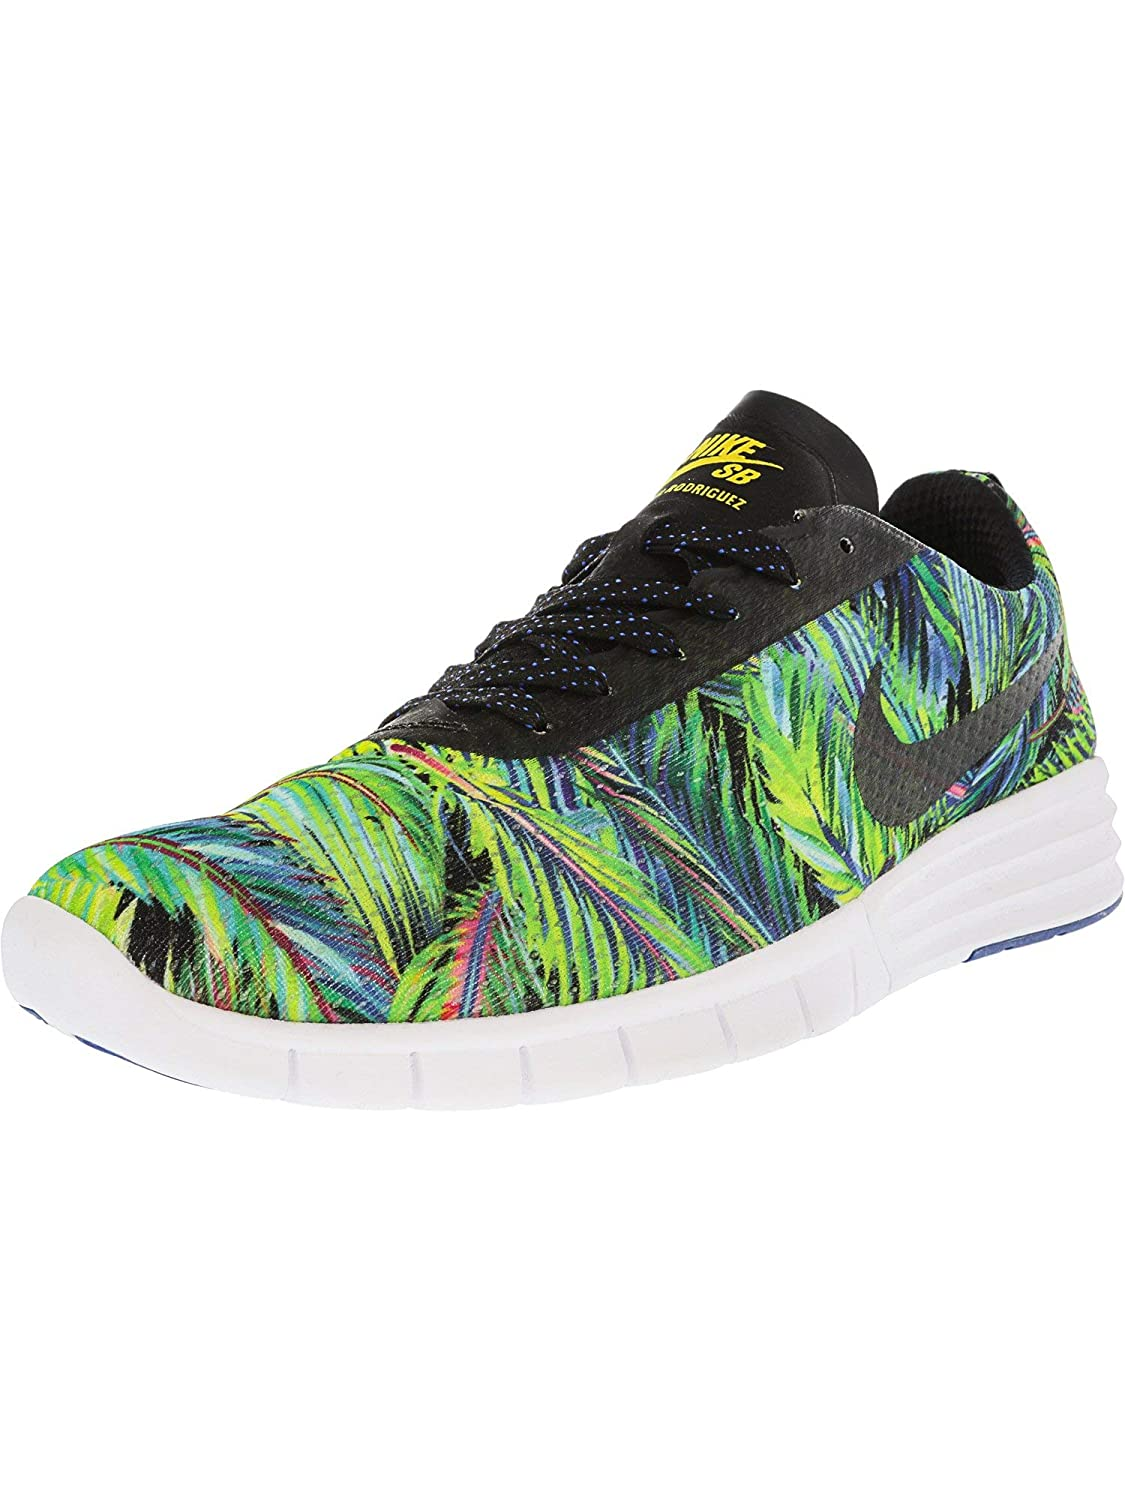 cheap for discount c288d 85acf Nike Nike Nike - SB Lunar Paul Rodriguez 9, Scarpe da Ginnastica Unisex   ndash  Adulto B015XFFIQC 42.5 EU MultiColoreeee (blu nero biancao (Game  Royal ...